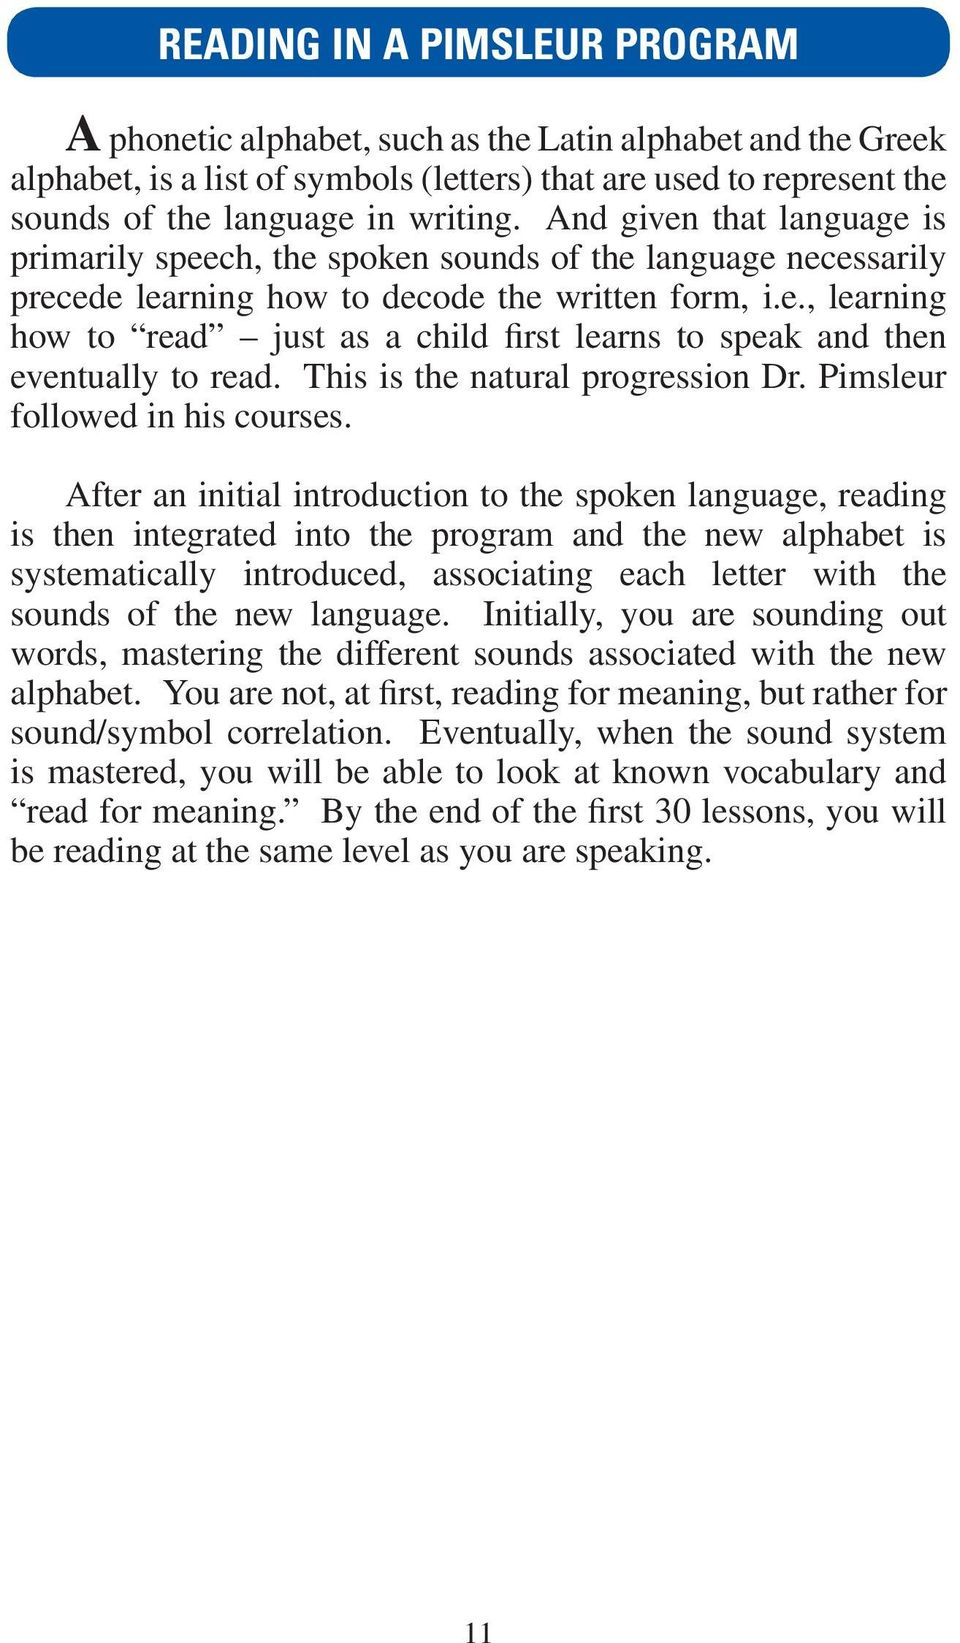 This is the natural progression Dr. Pimsleur followed in his courses.